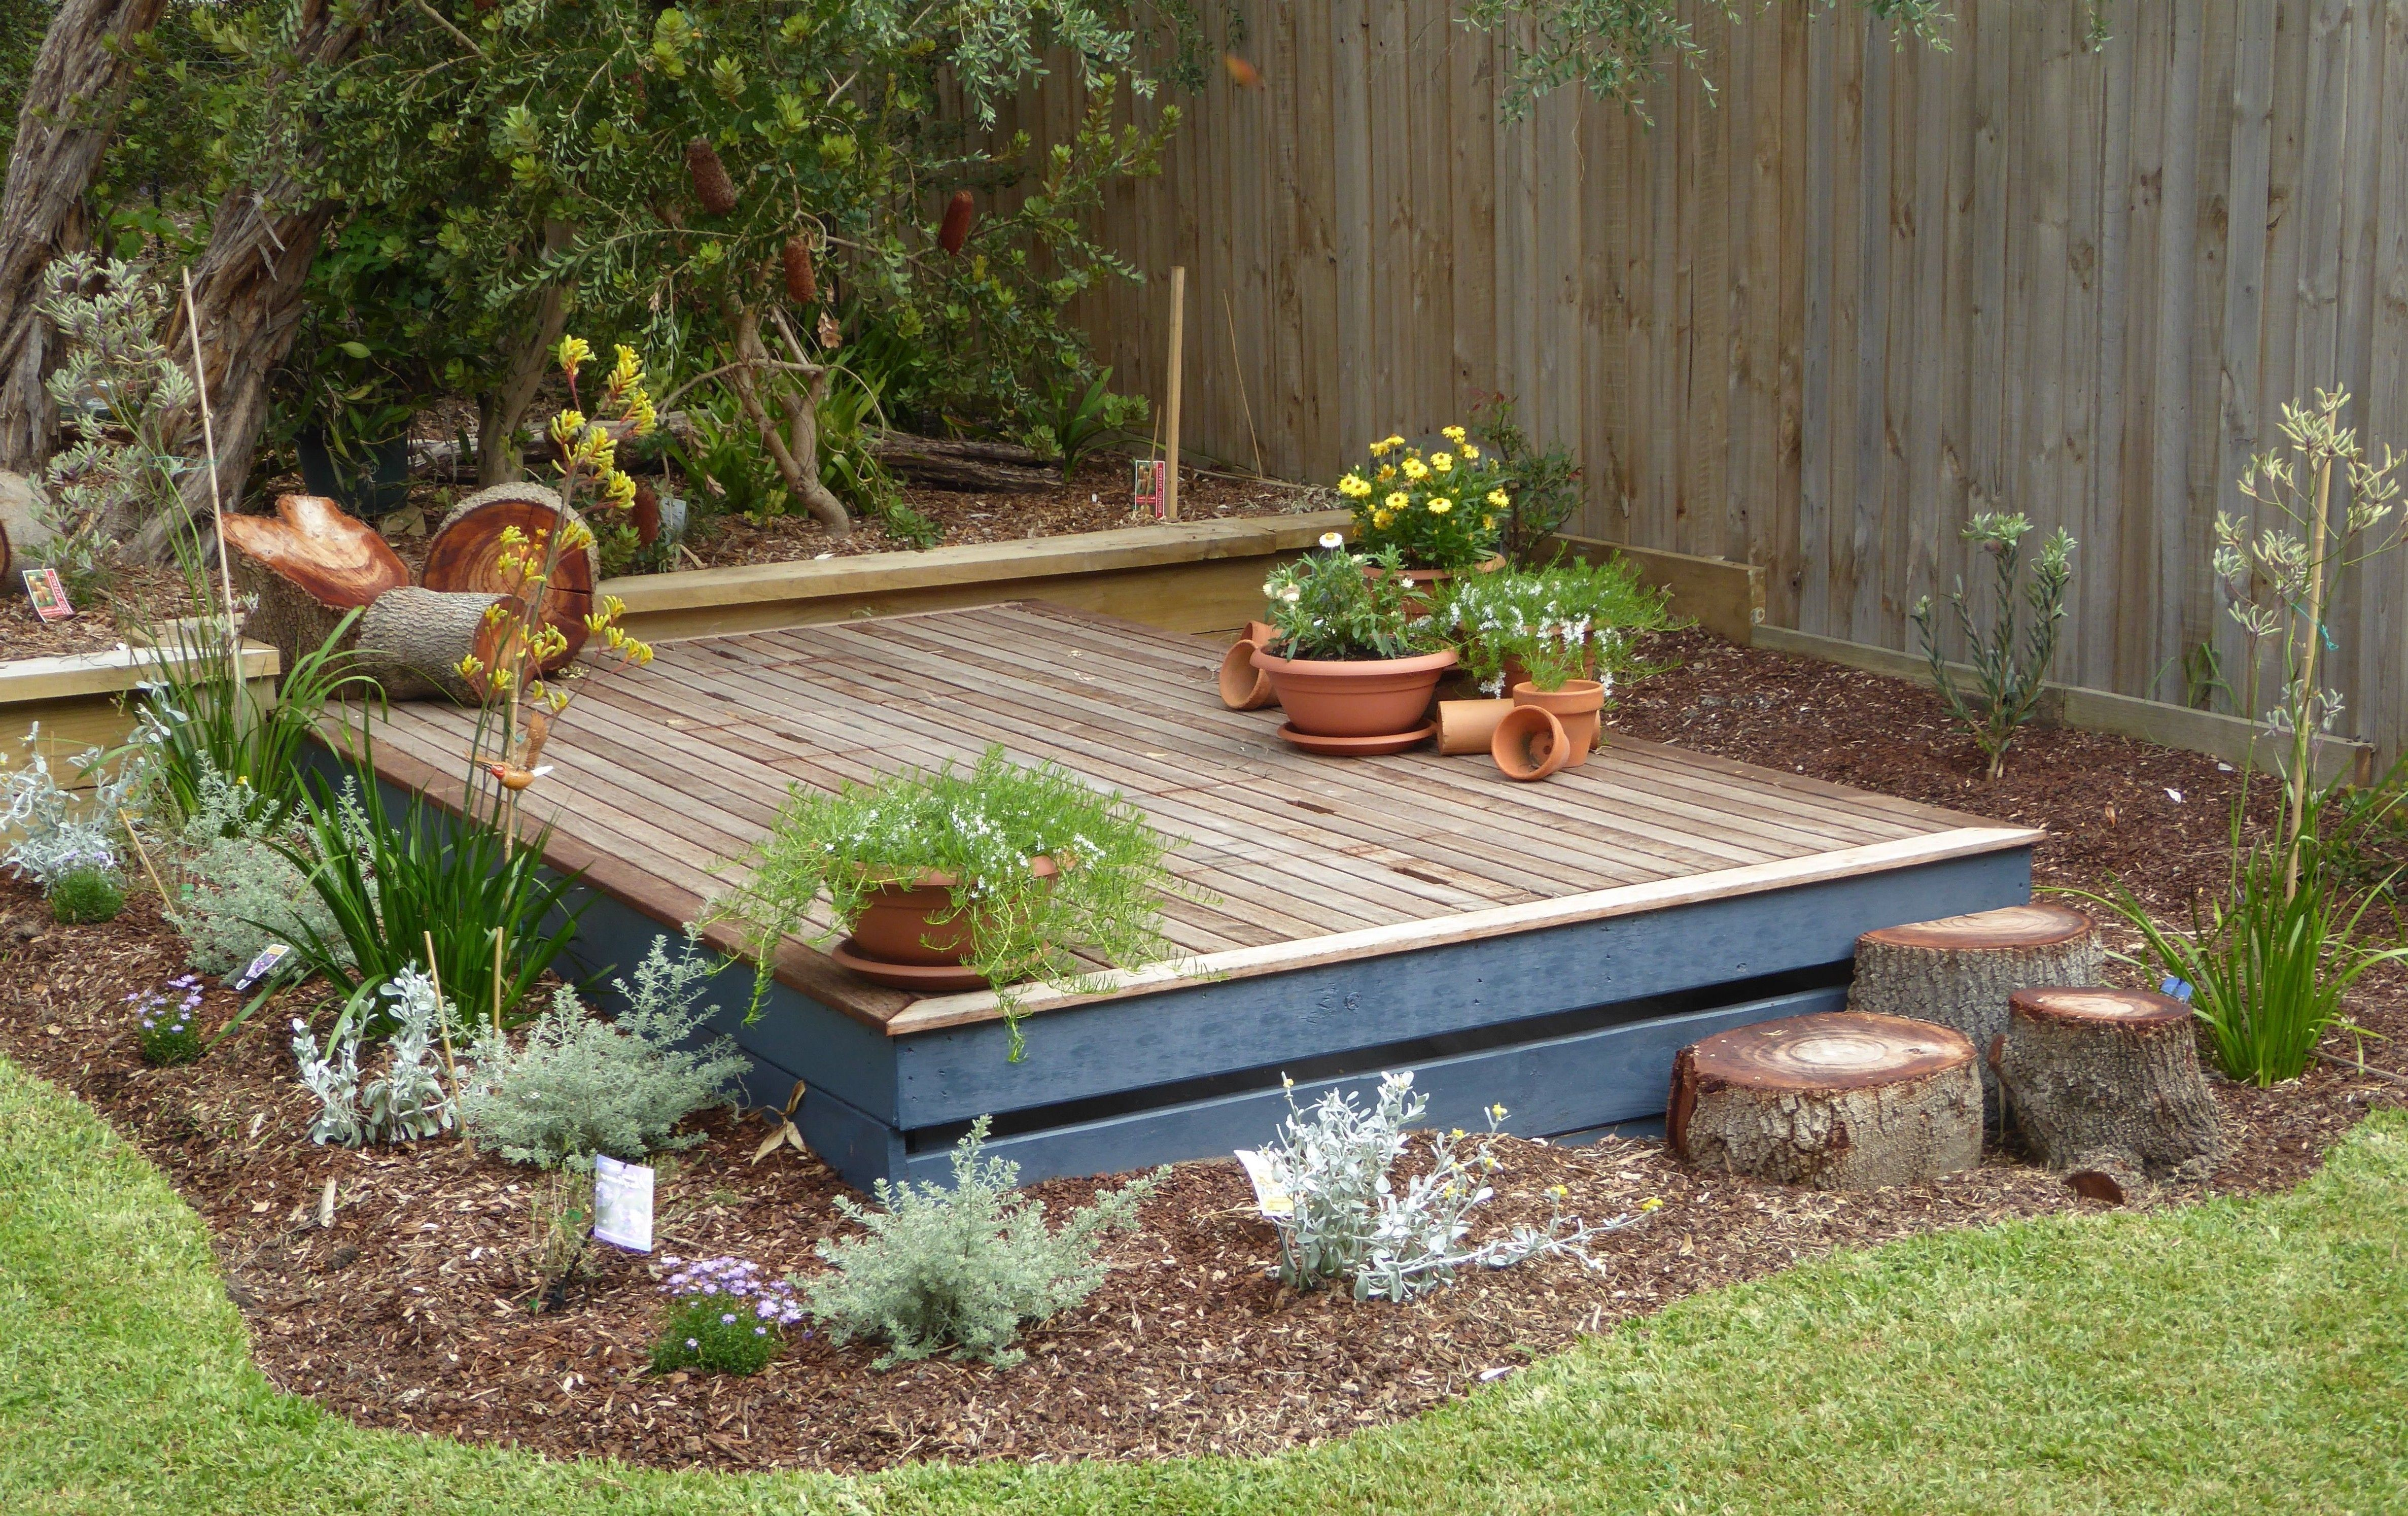 Best Decorative Septic Tank Cover Ideas (With images